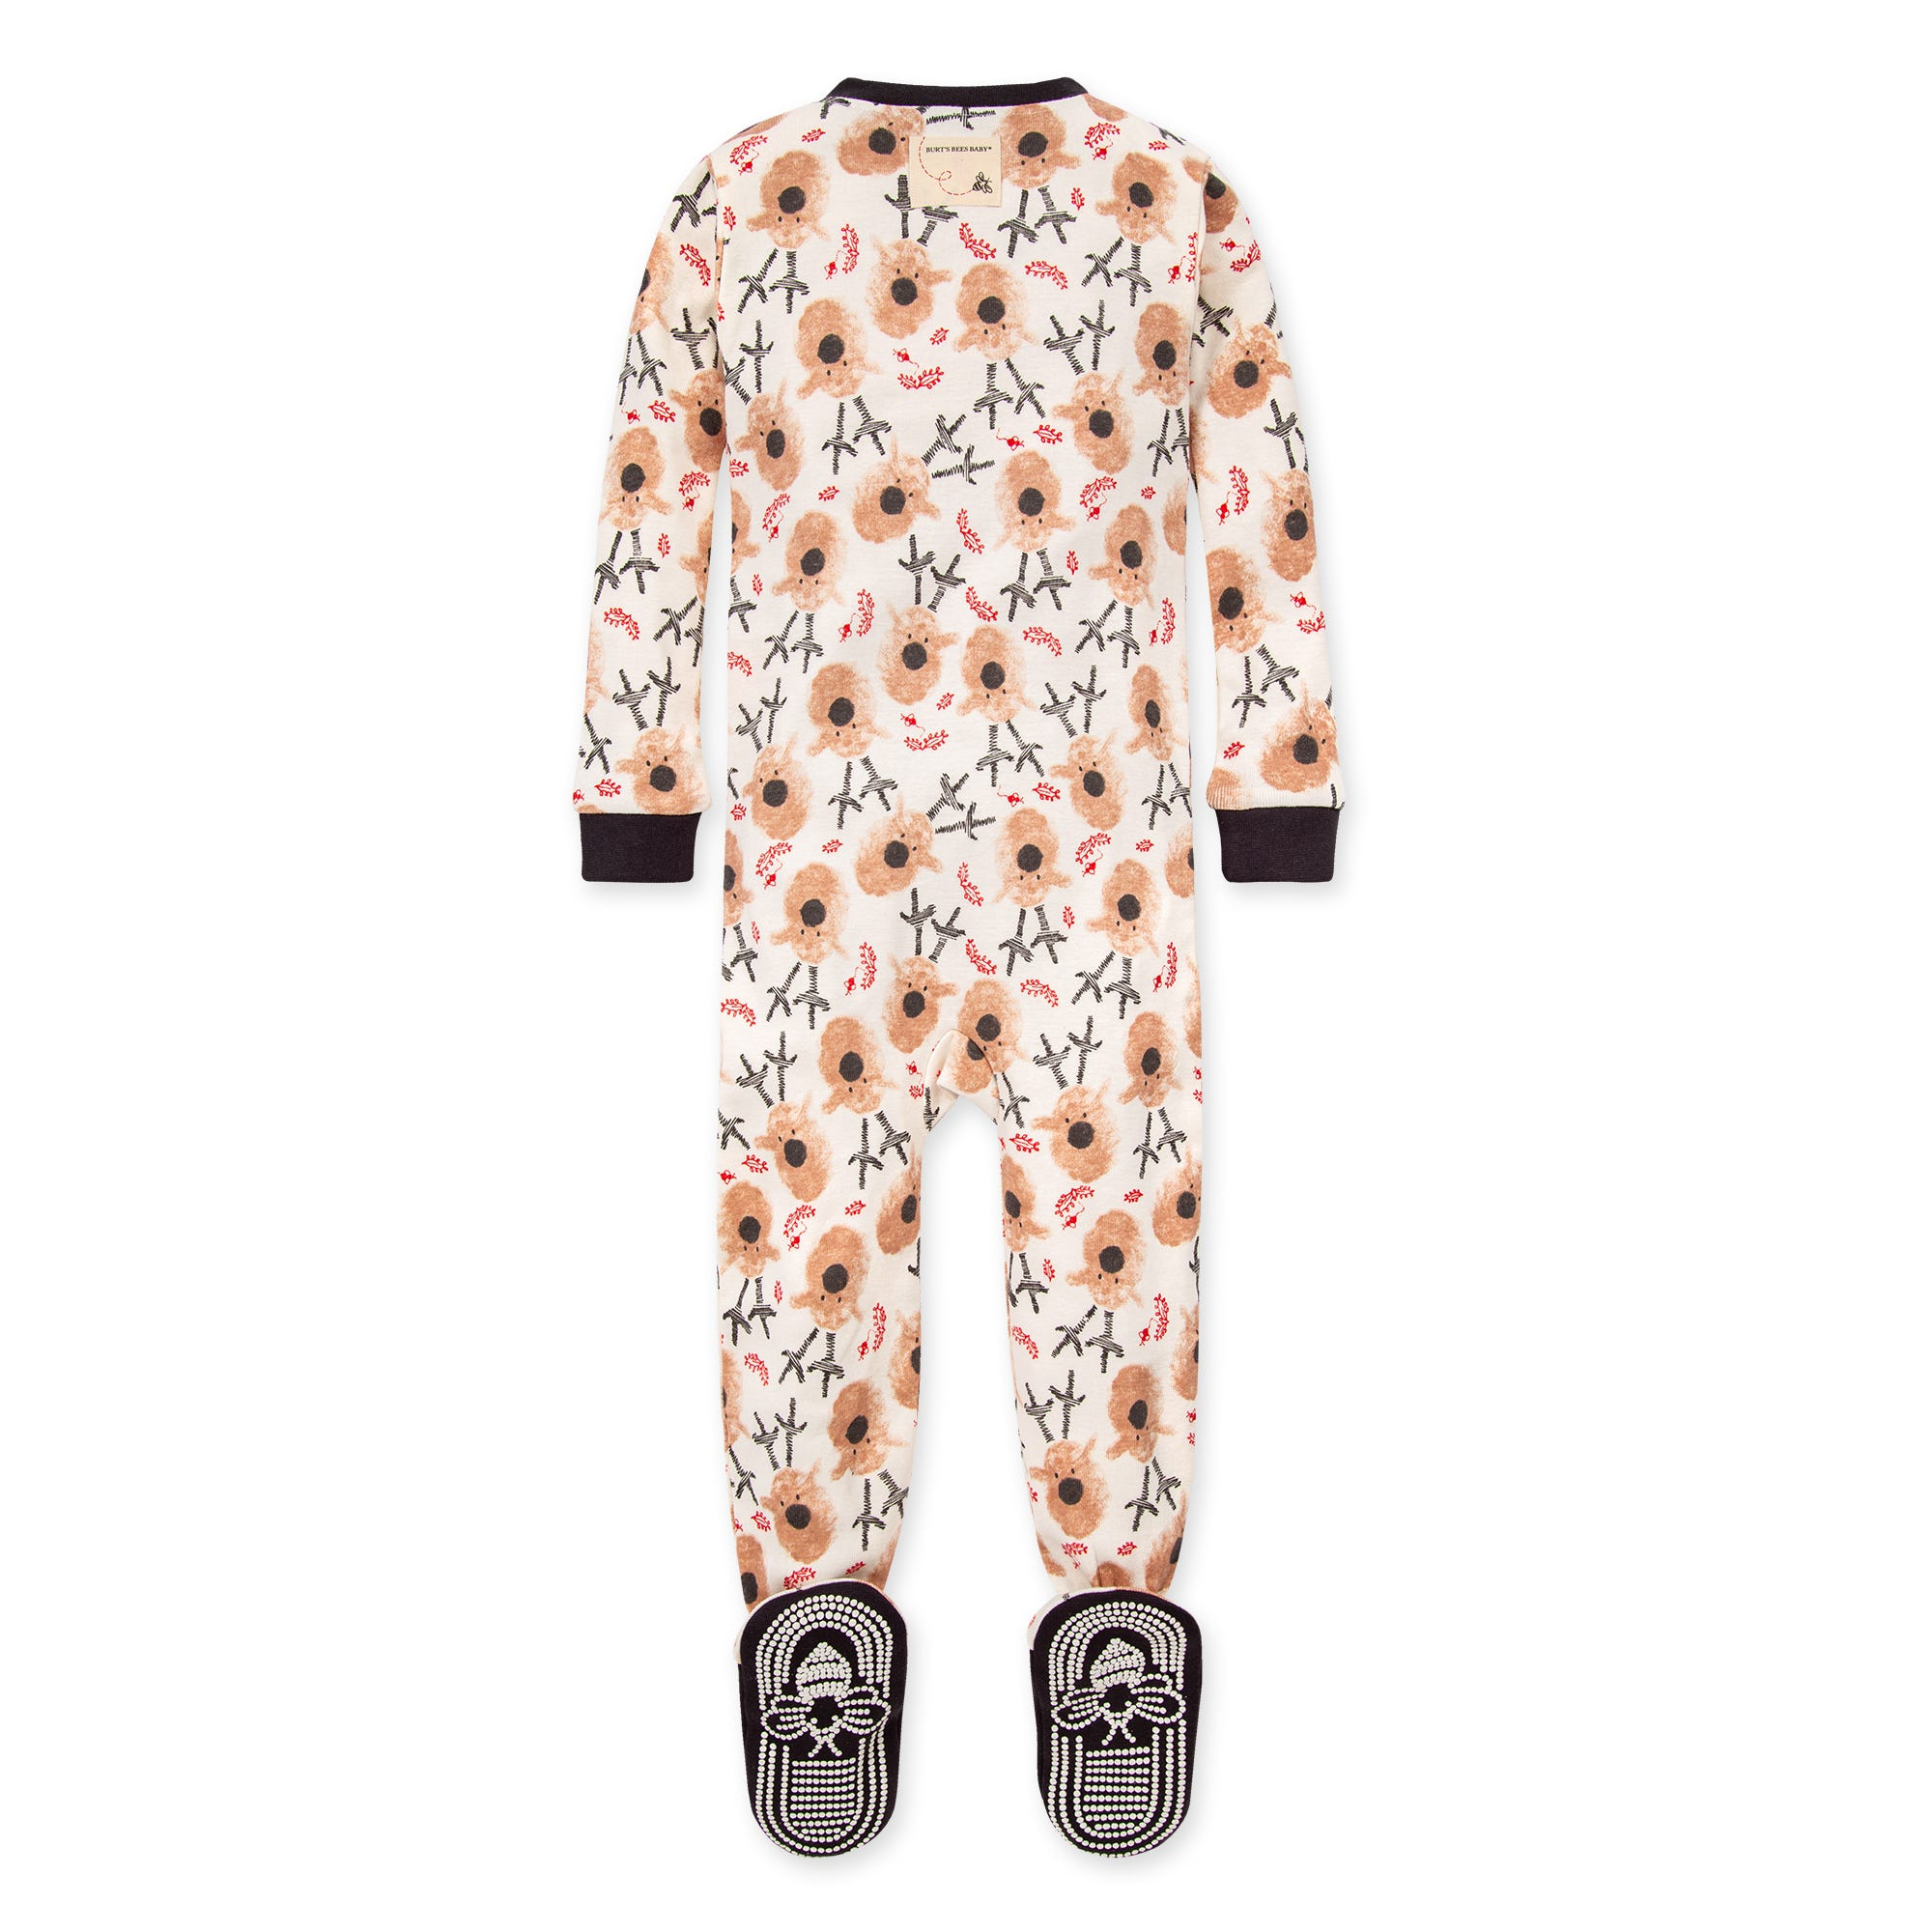 Family PJs Baby and Toddler One Piece Footed Unisex Holiday Pajamas 18 month